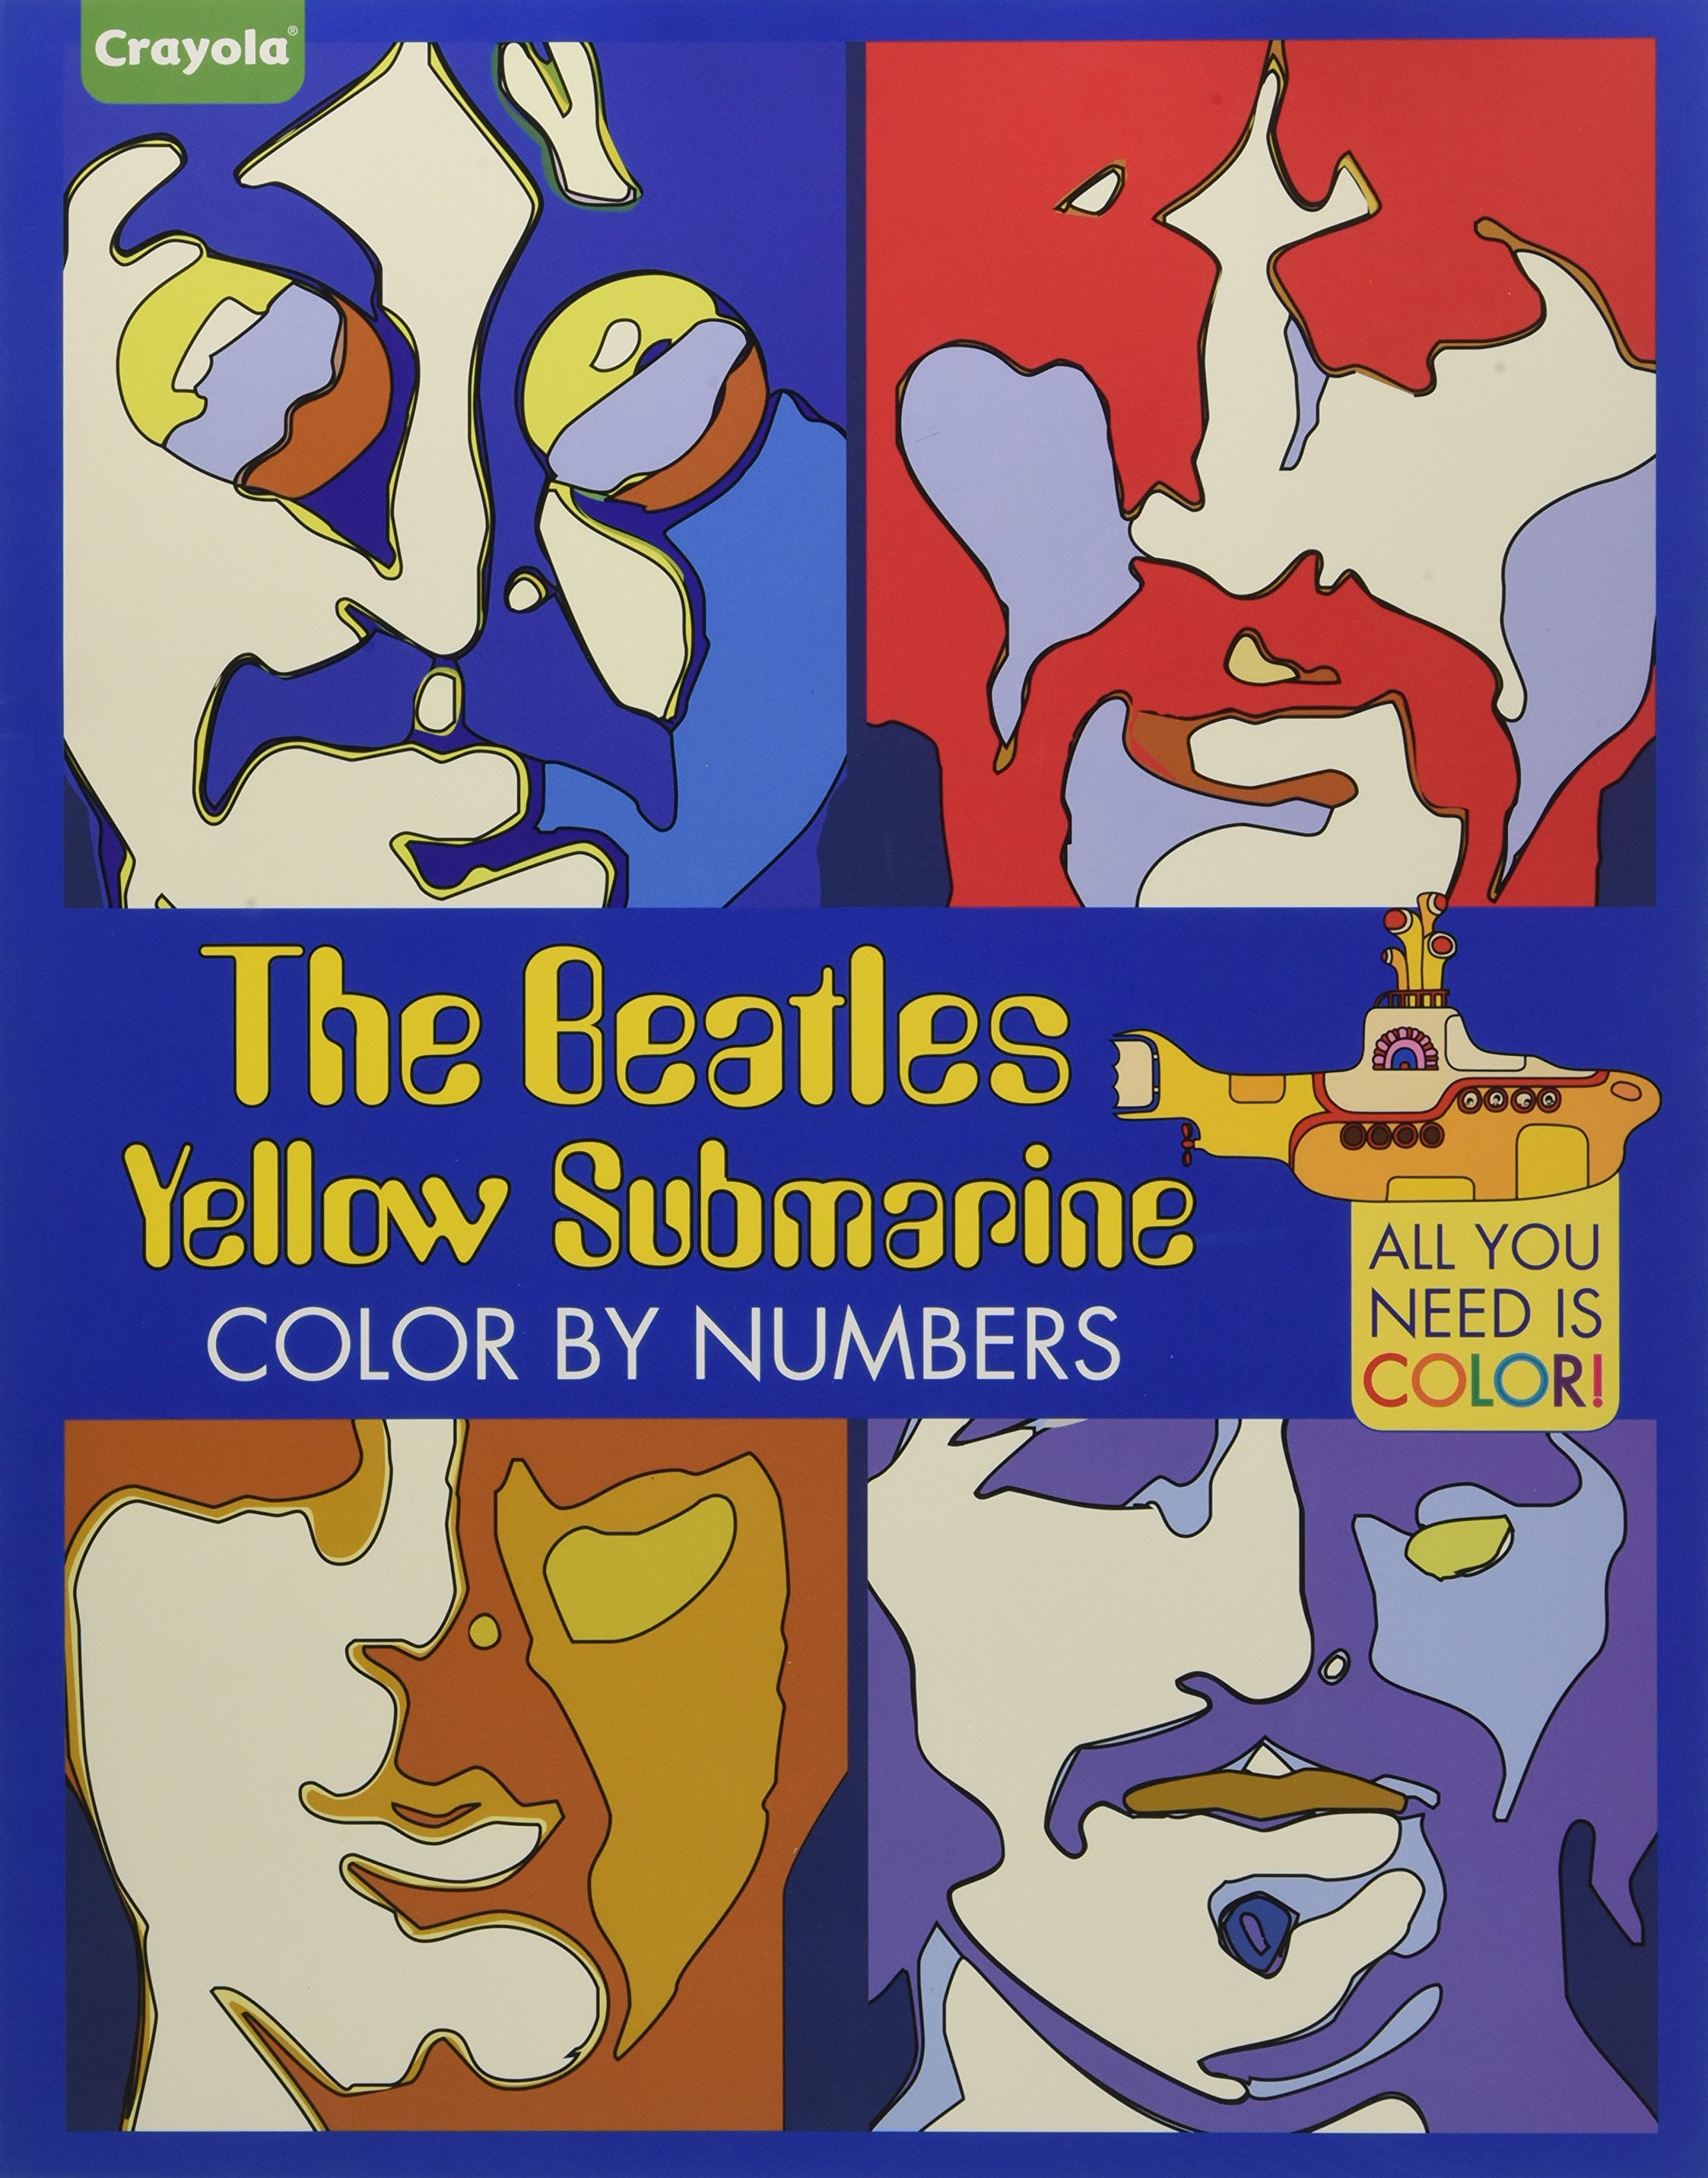 crayola the beatles yellow submarine color by numbers all you need